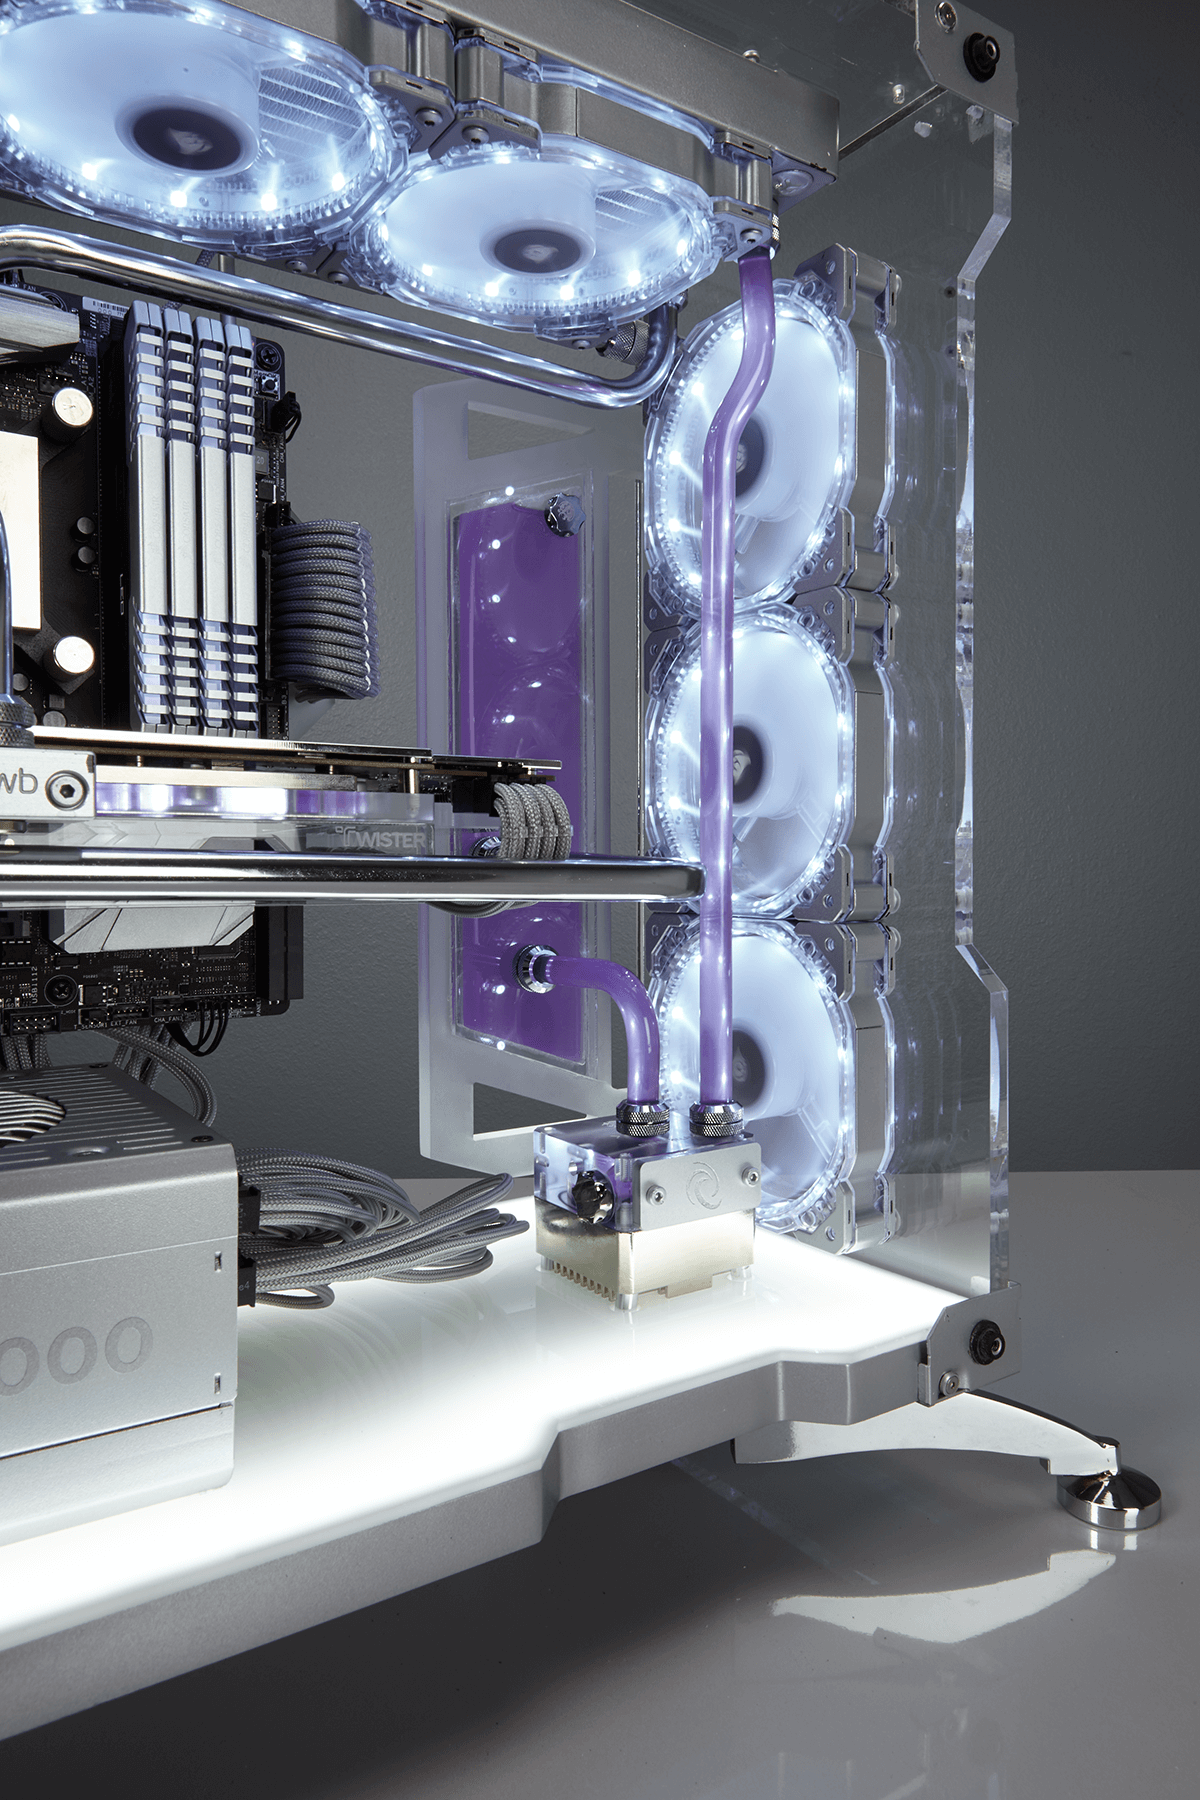 Twistermod_Corsair_ROG_570x_Crystalized_06